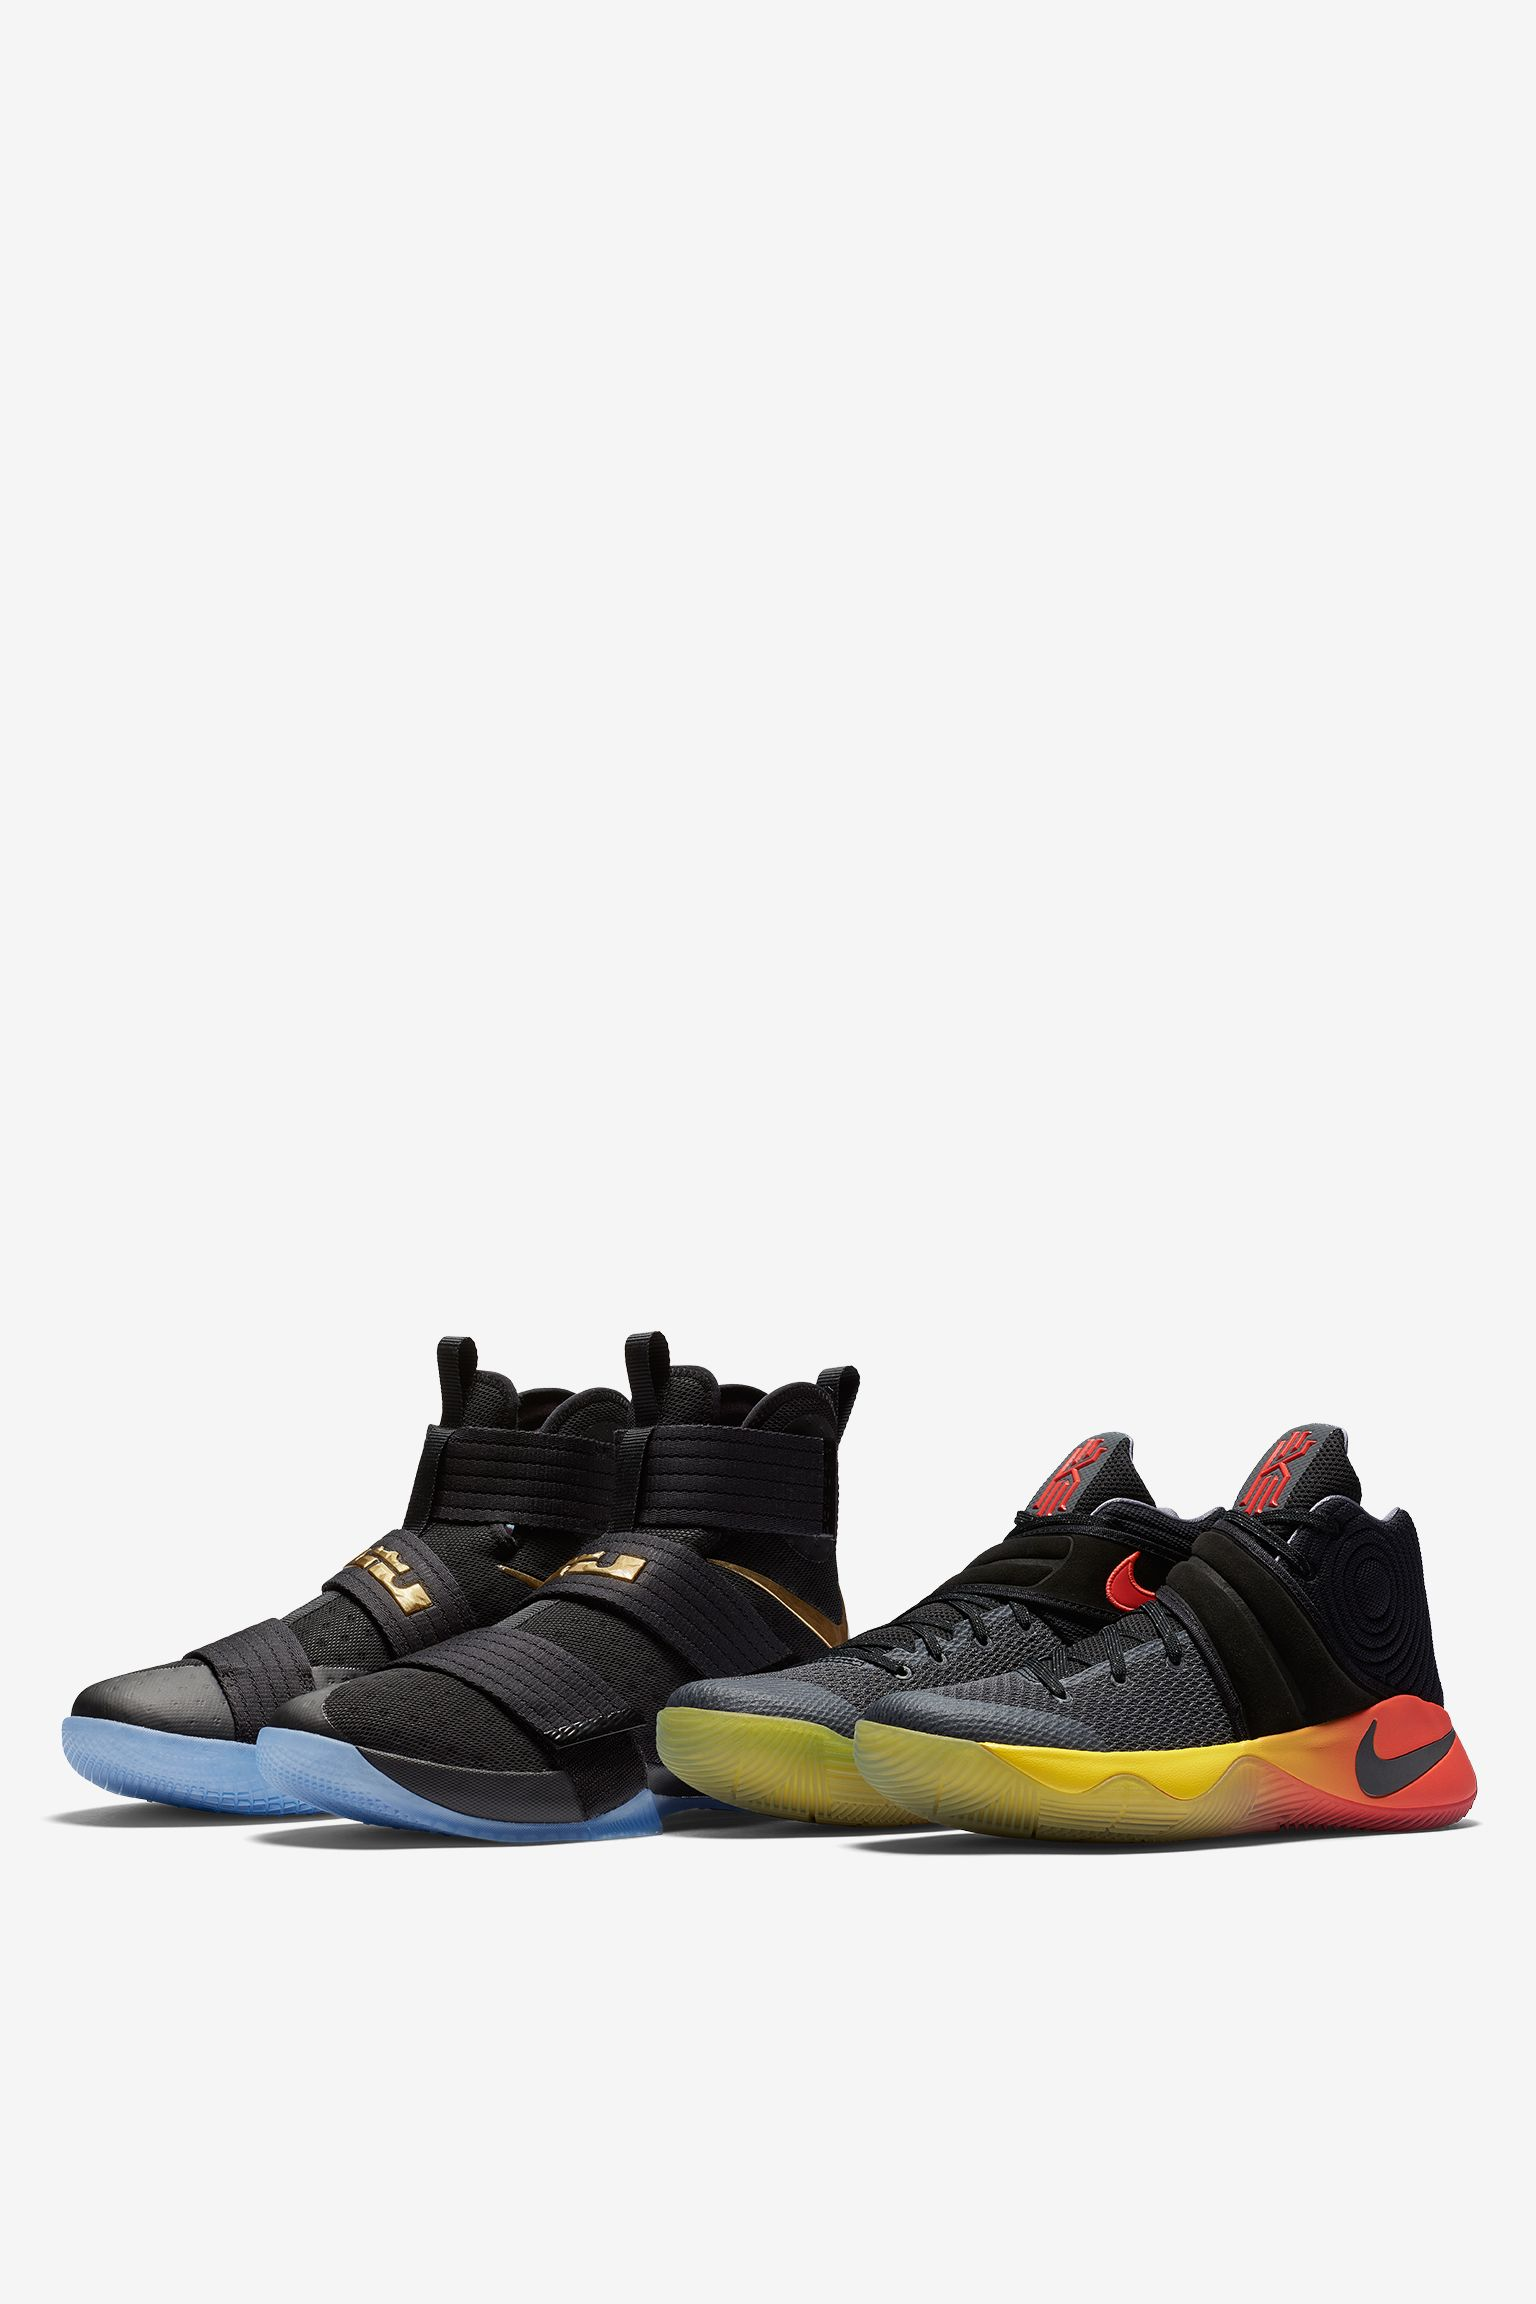 Nike Basketball 'Four Wins Pack'